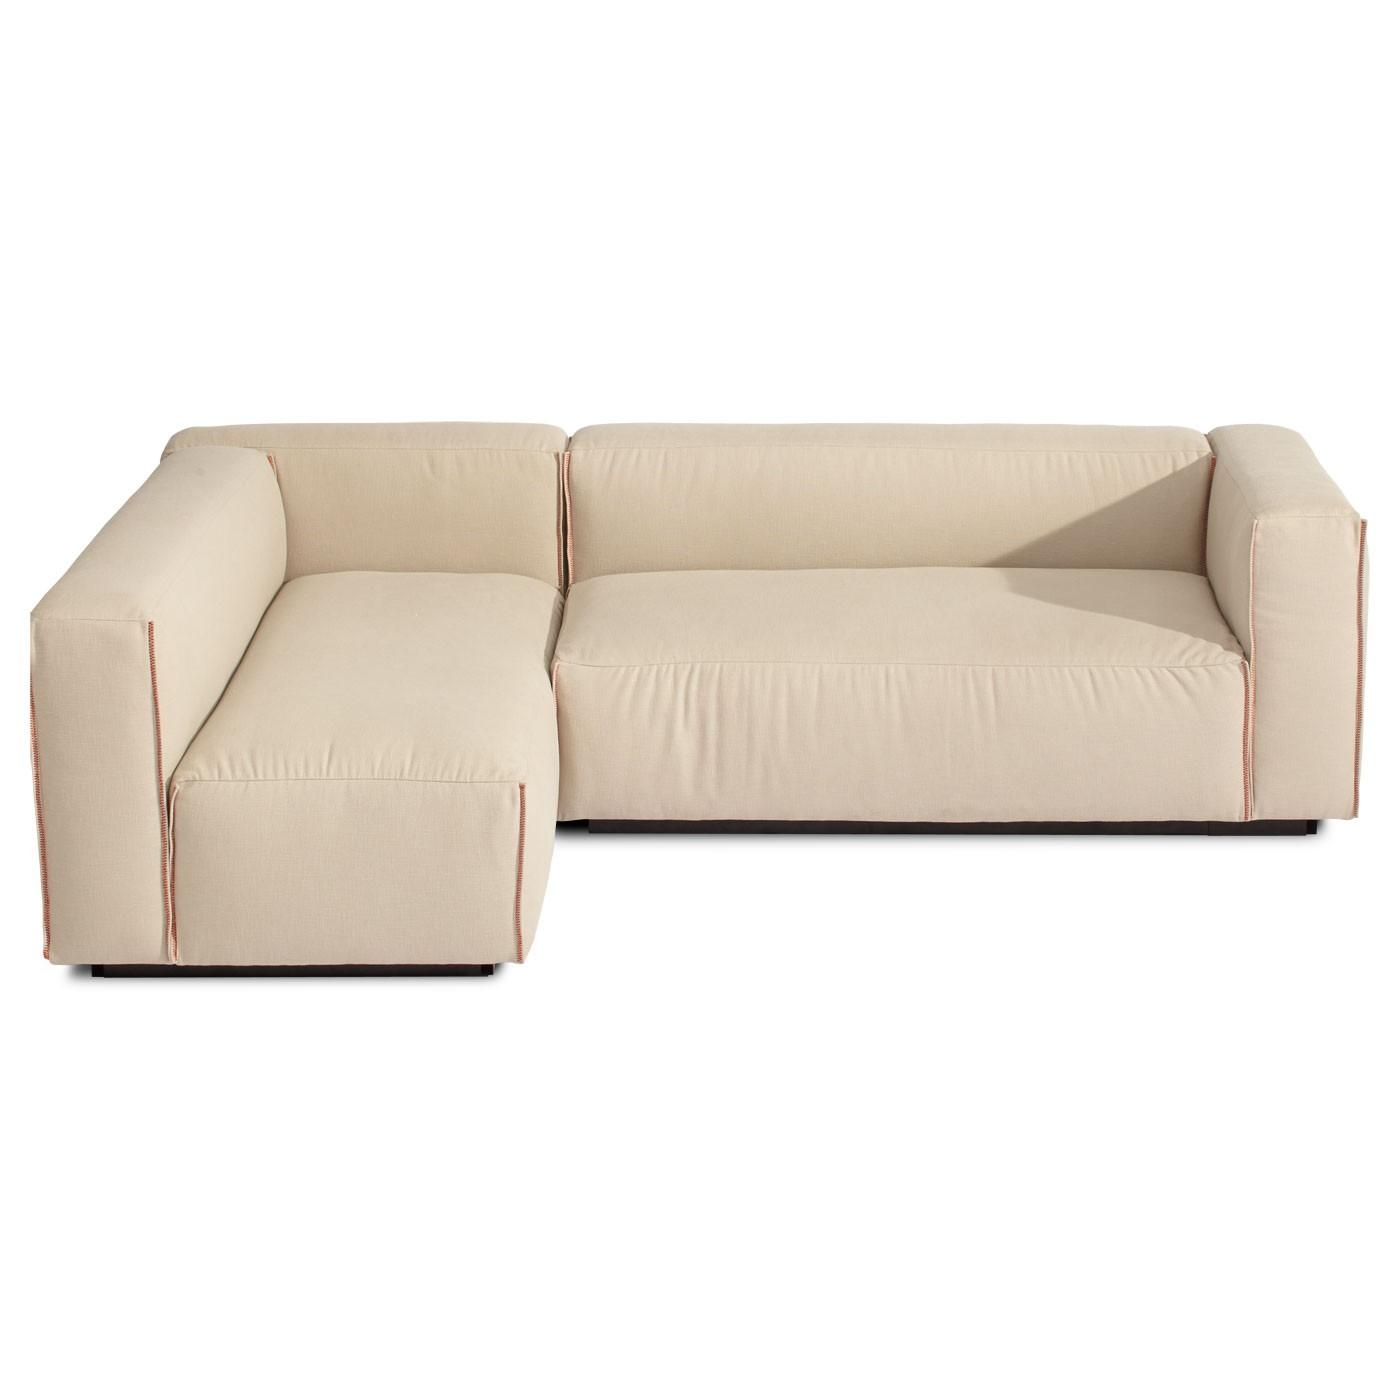 Small Armless Sectional Sofas (View 5 of 20)